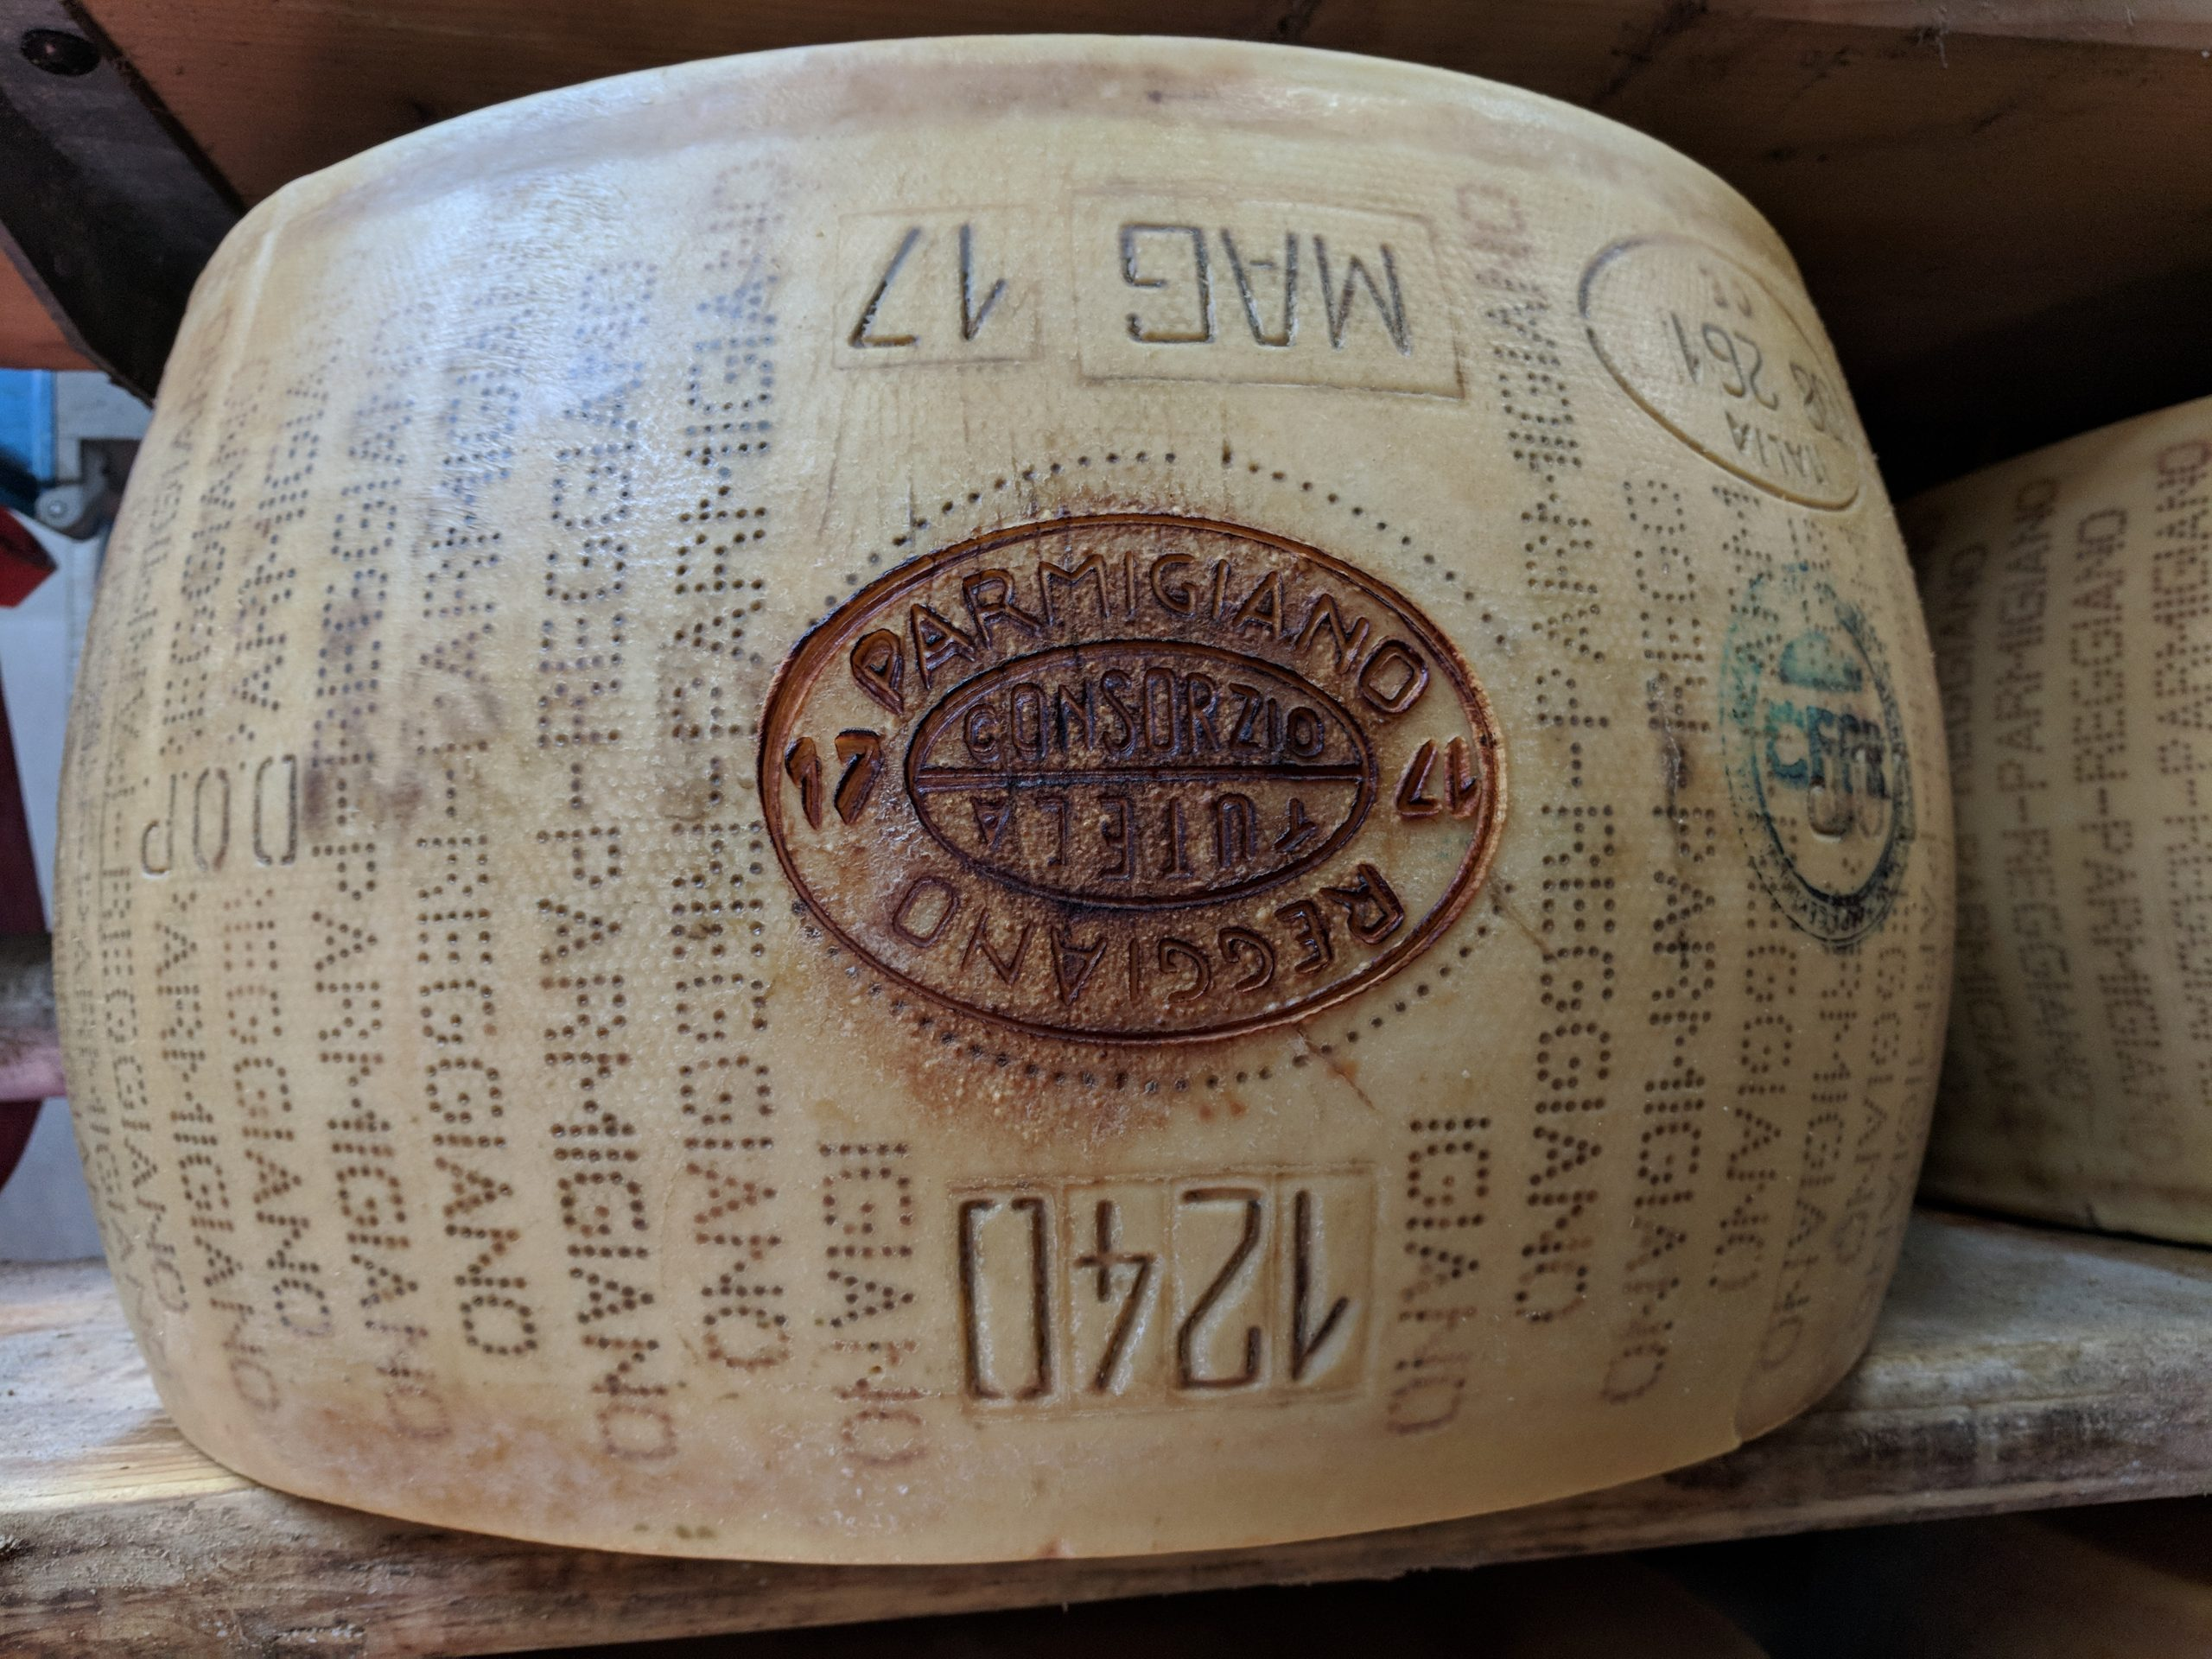 wheel of Parmigiano Reggiano